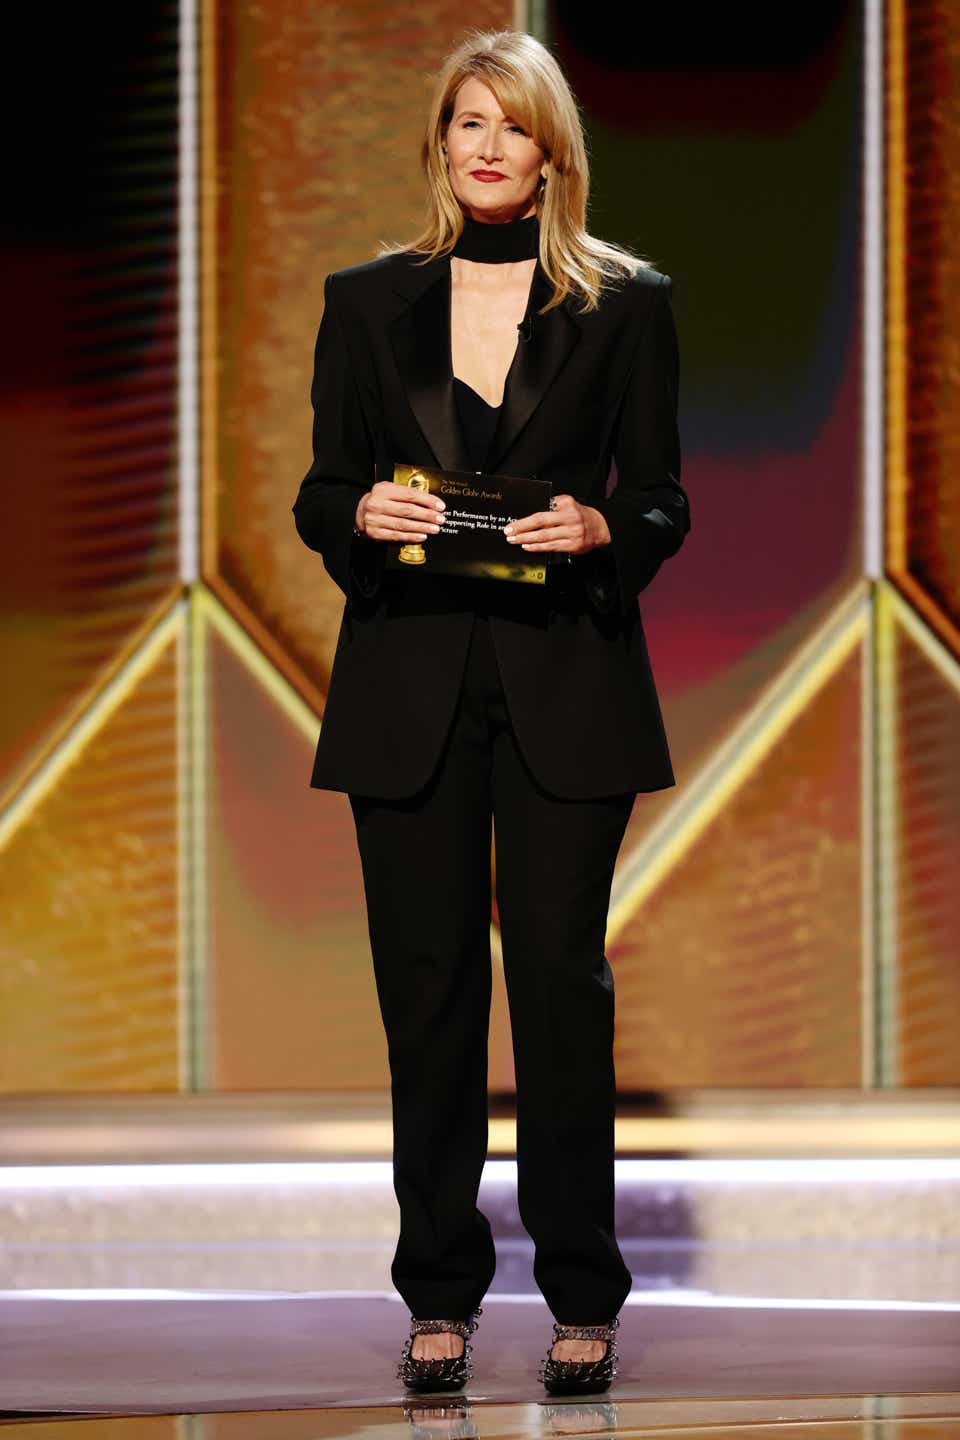 Laura Dern on stage at the Golden Globes in a Givenchy tuxedo with a bra top.